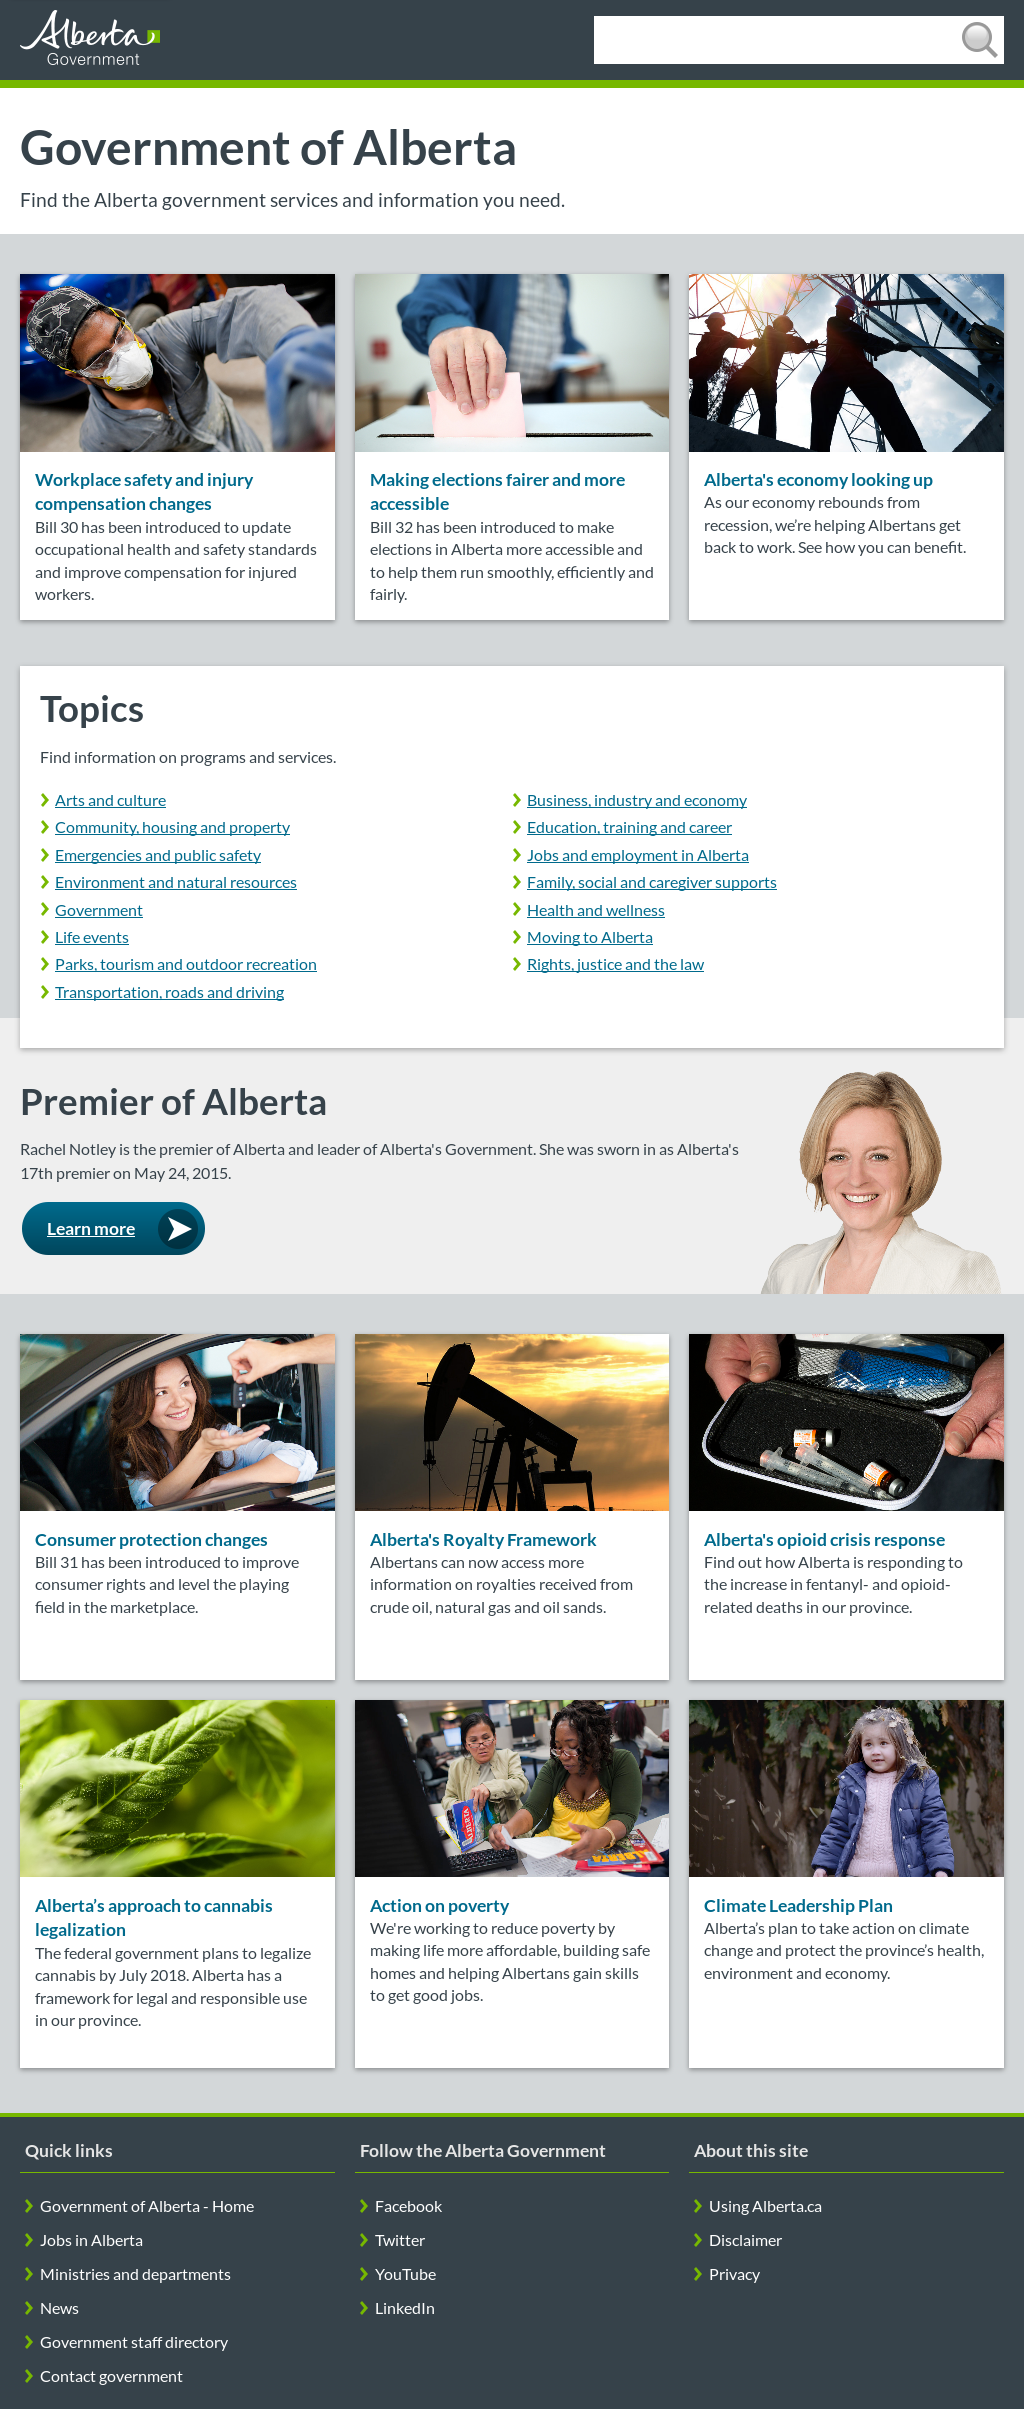 Owler Reports - Government of Alberta posted a video